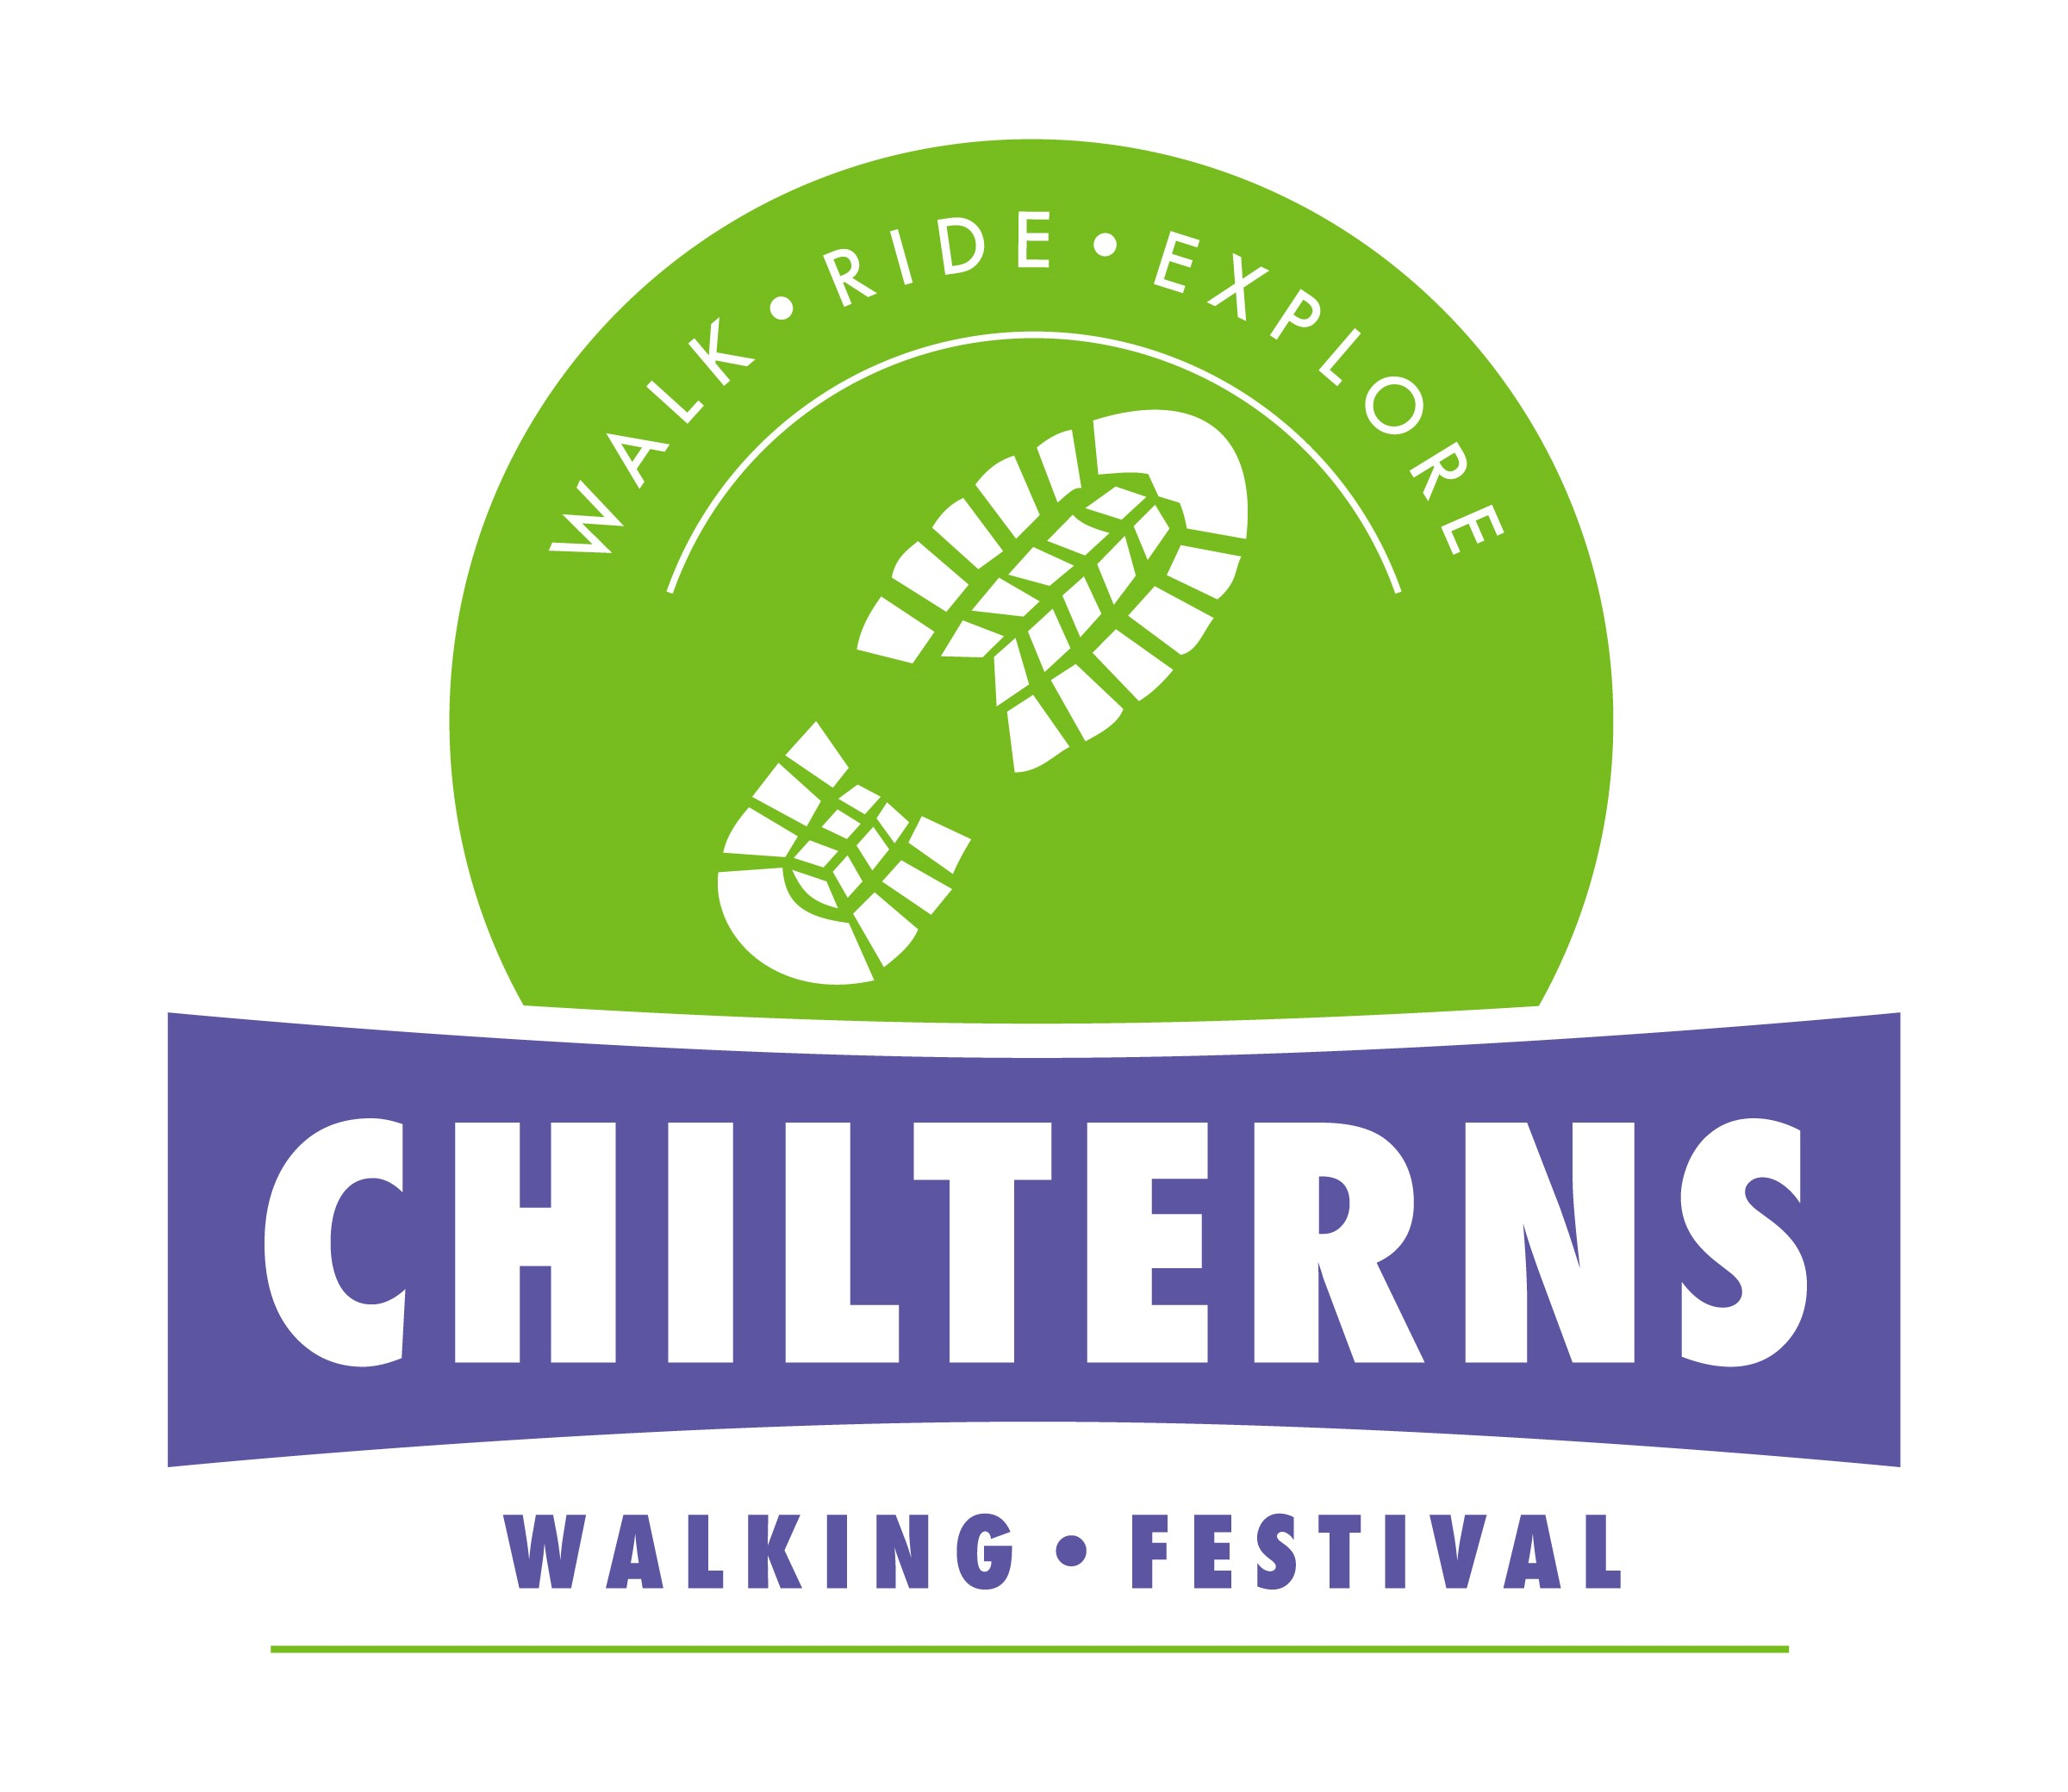 Chilterns Walking Festival Logo